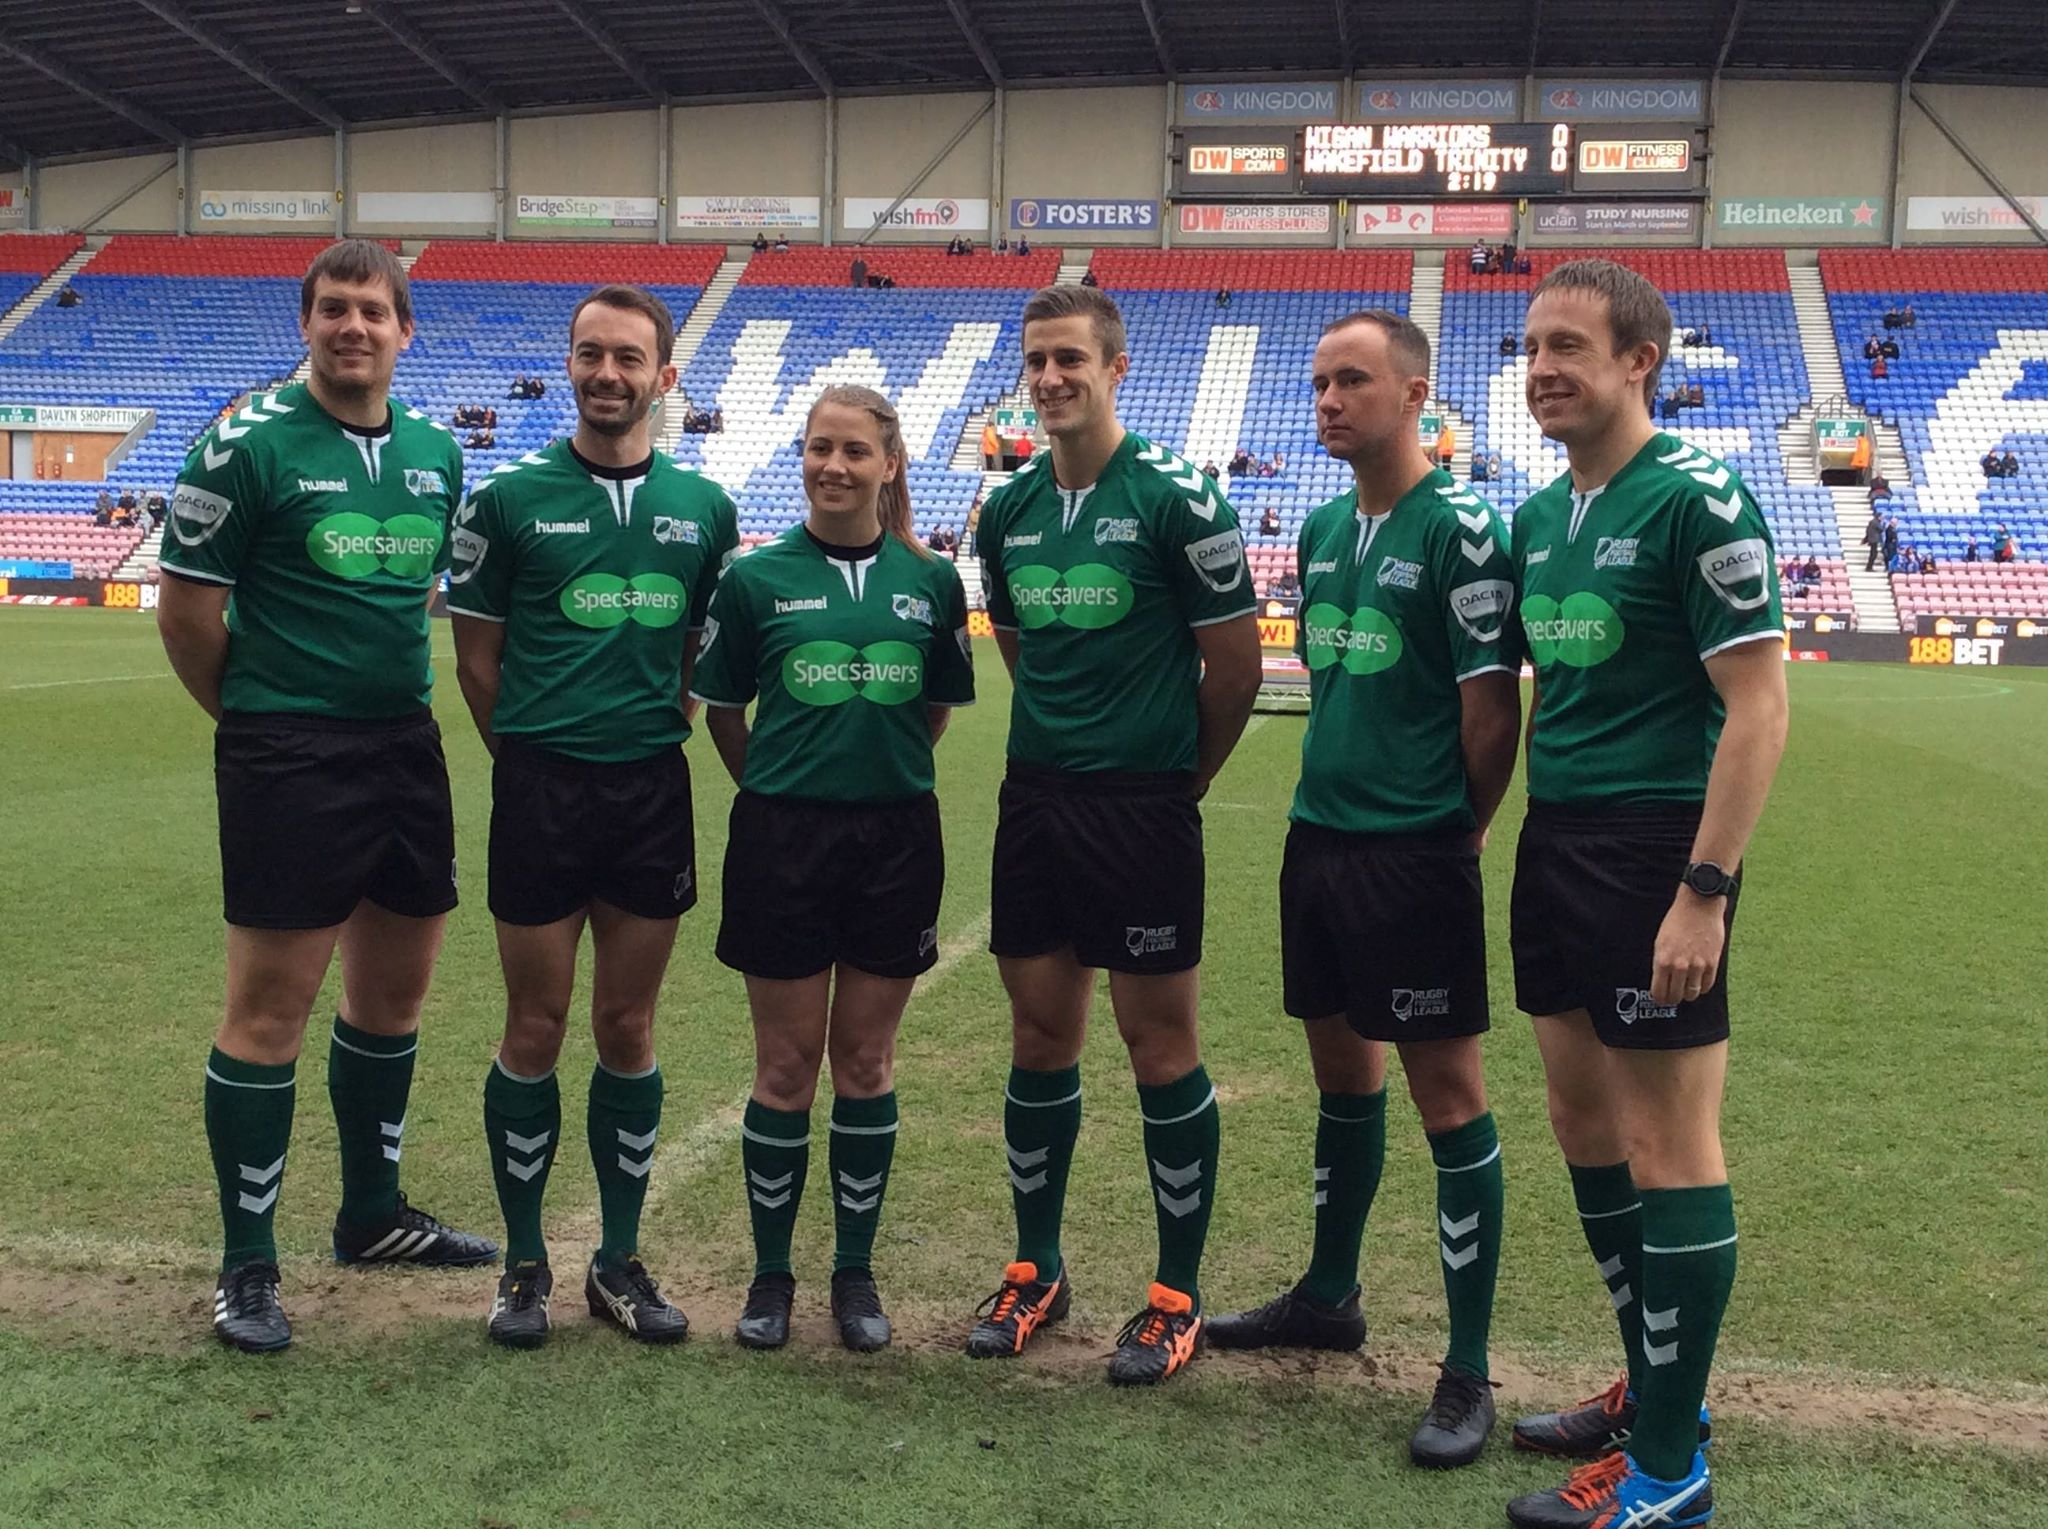 Historic moment as Tara Jones lines up with the team of match officials at yesterday's Wigan v Wakefield game